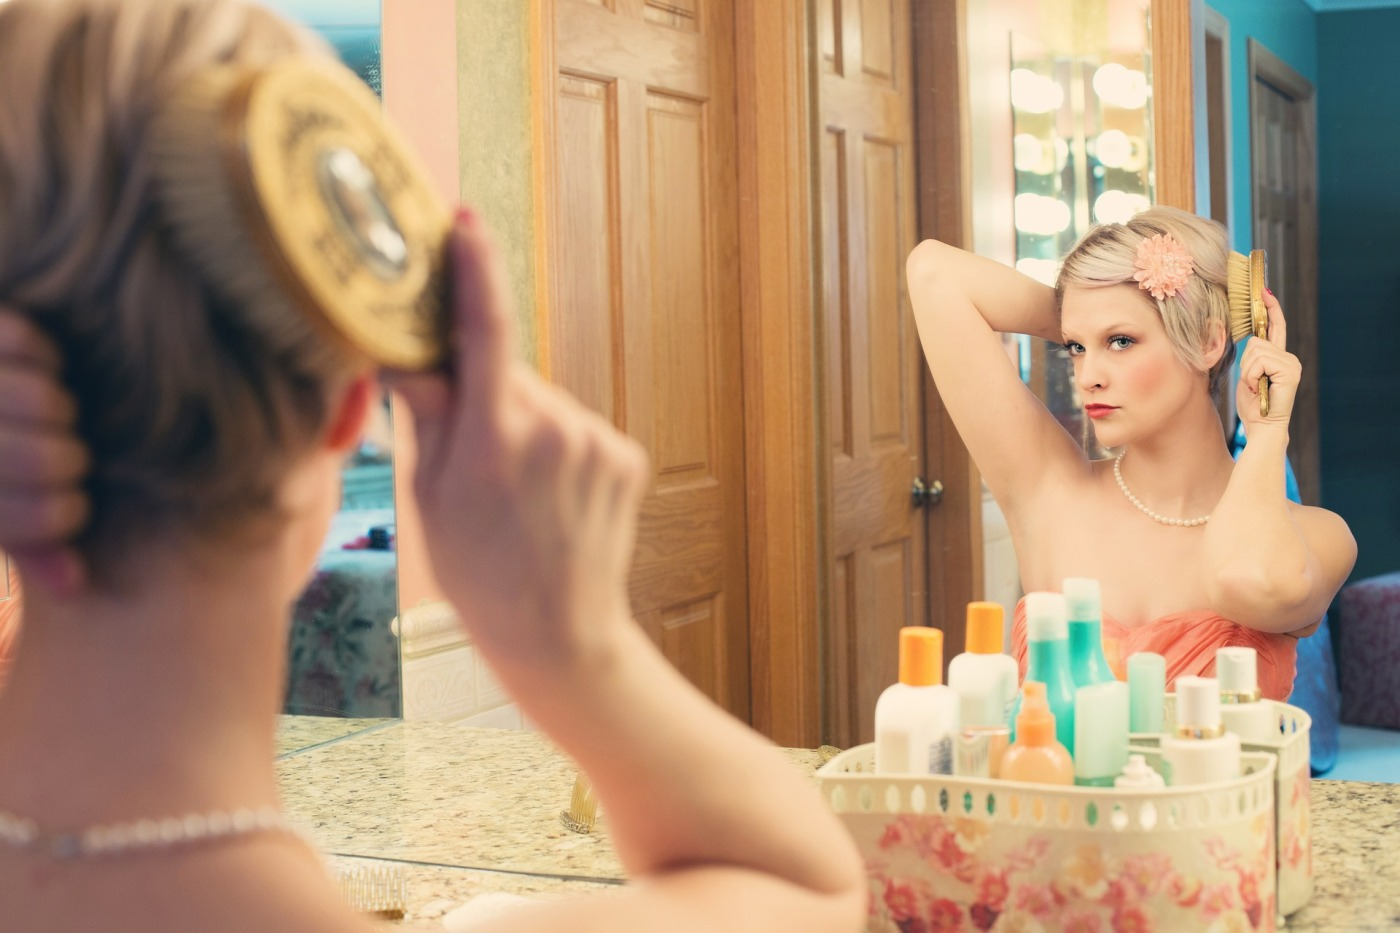 Is your beauty routine safe? - TopicsWithPassion.blog